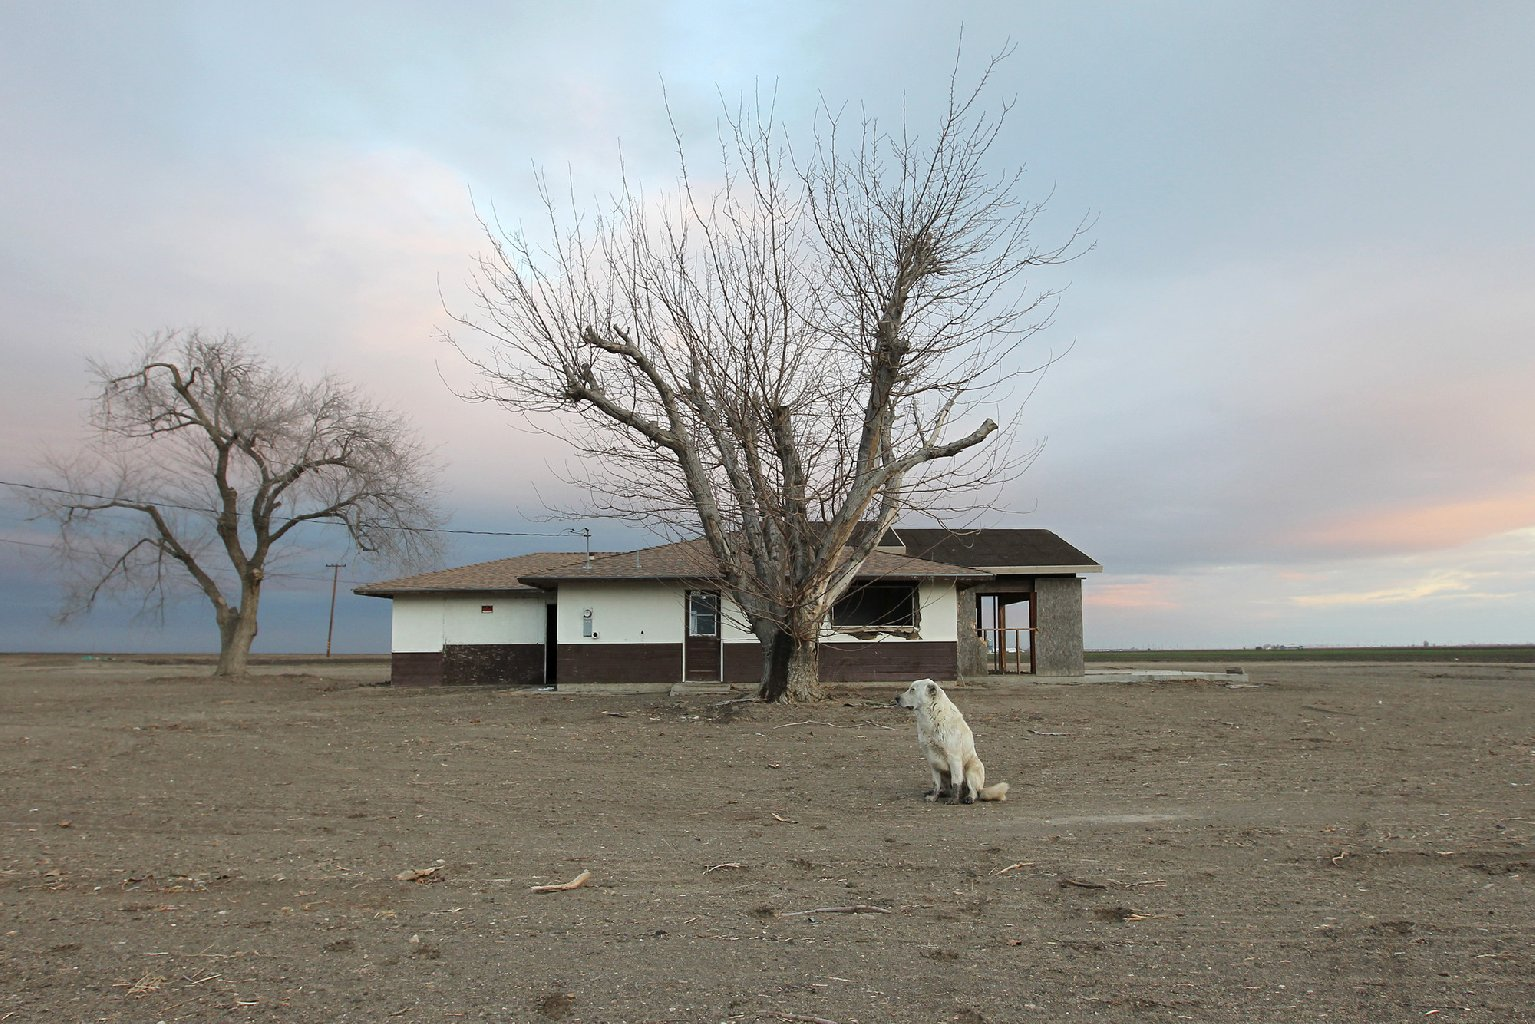 A dog hangs around an abandoned farmhouse on February 6, 2014 near Bakersfield, California. (David McNew/KQED)